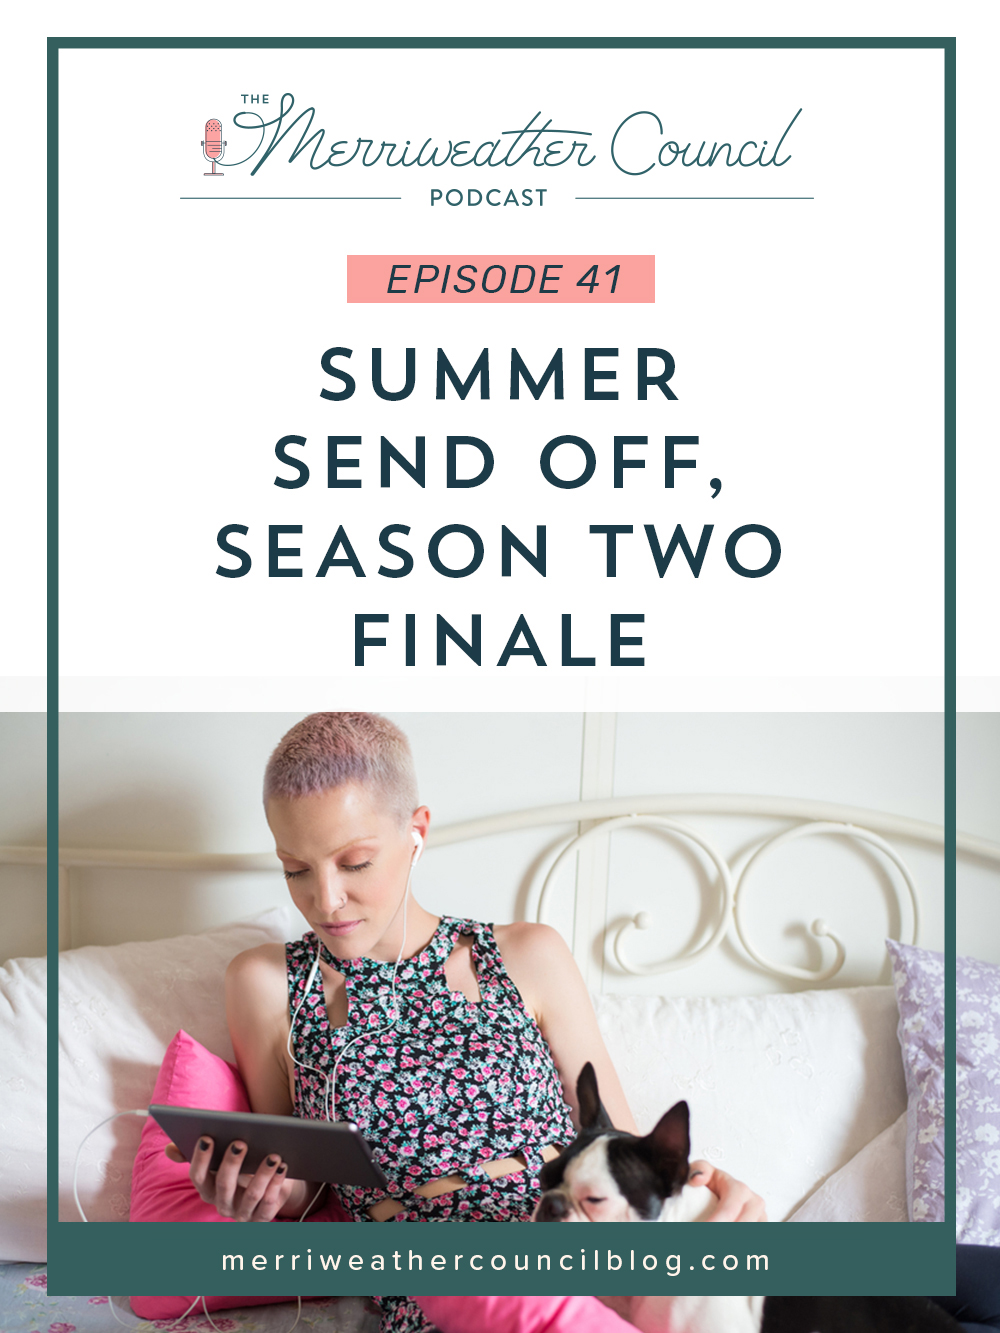 Episode 41: Summer Send Off, Season Two Finale   The Merriweather Council Podcast